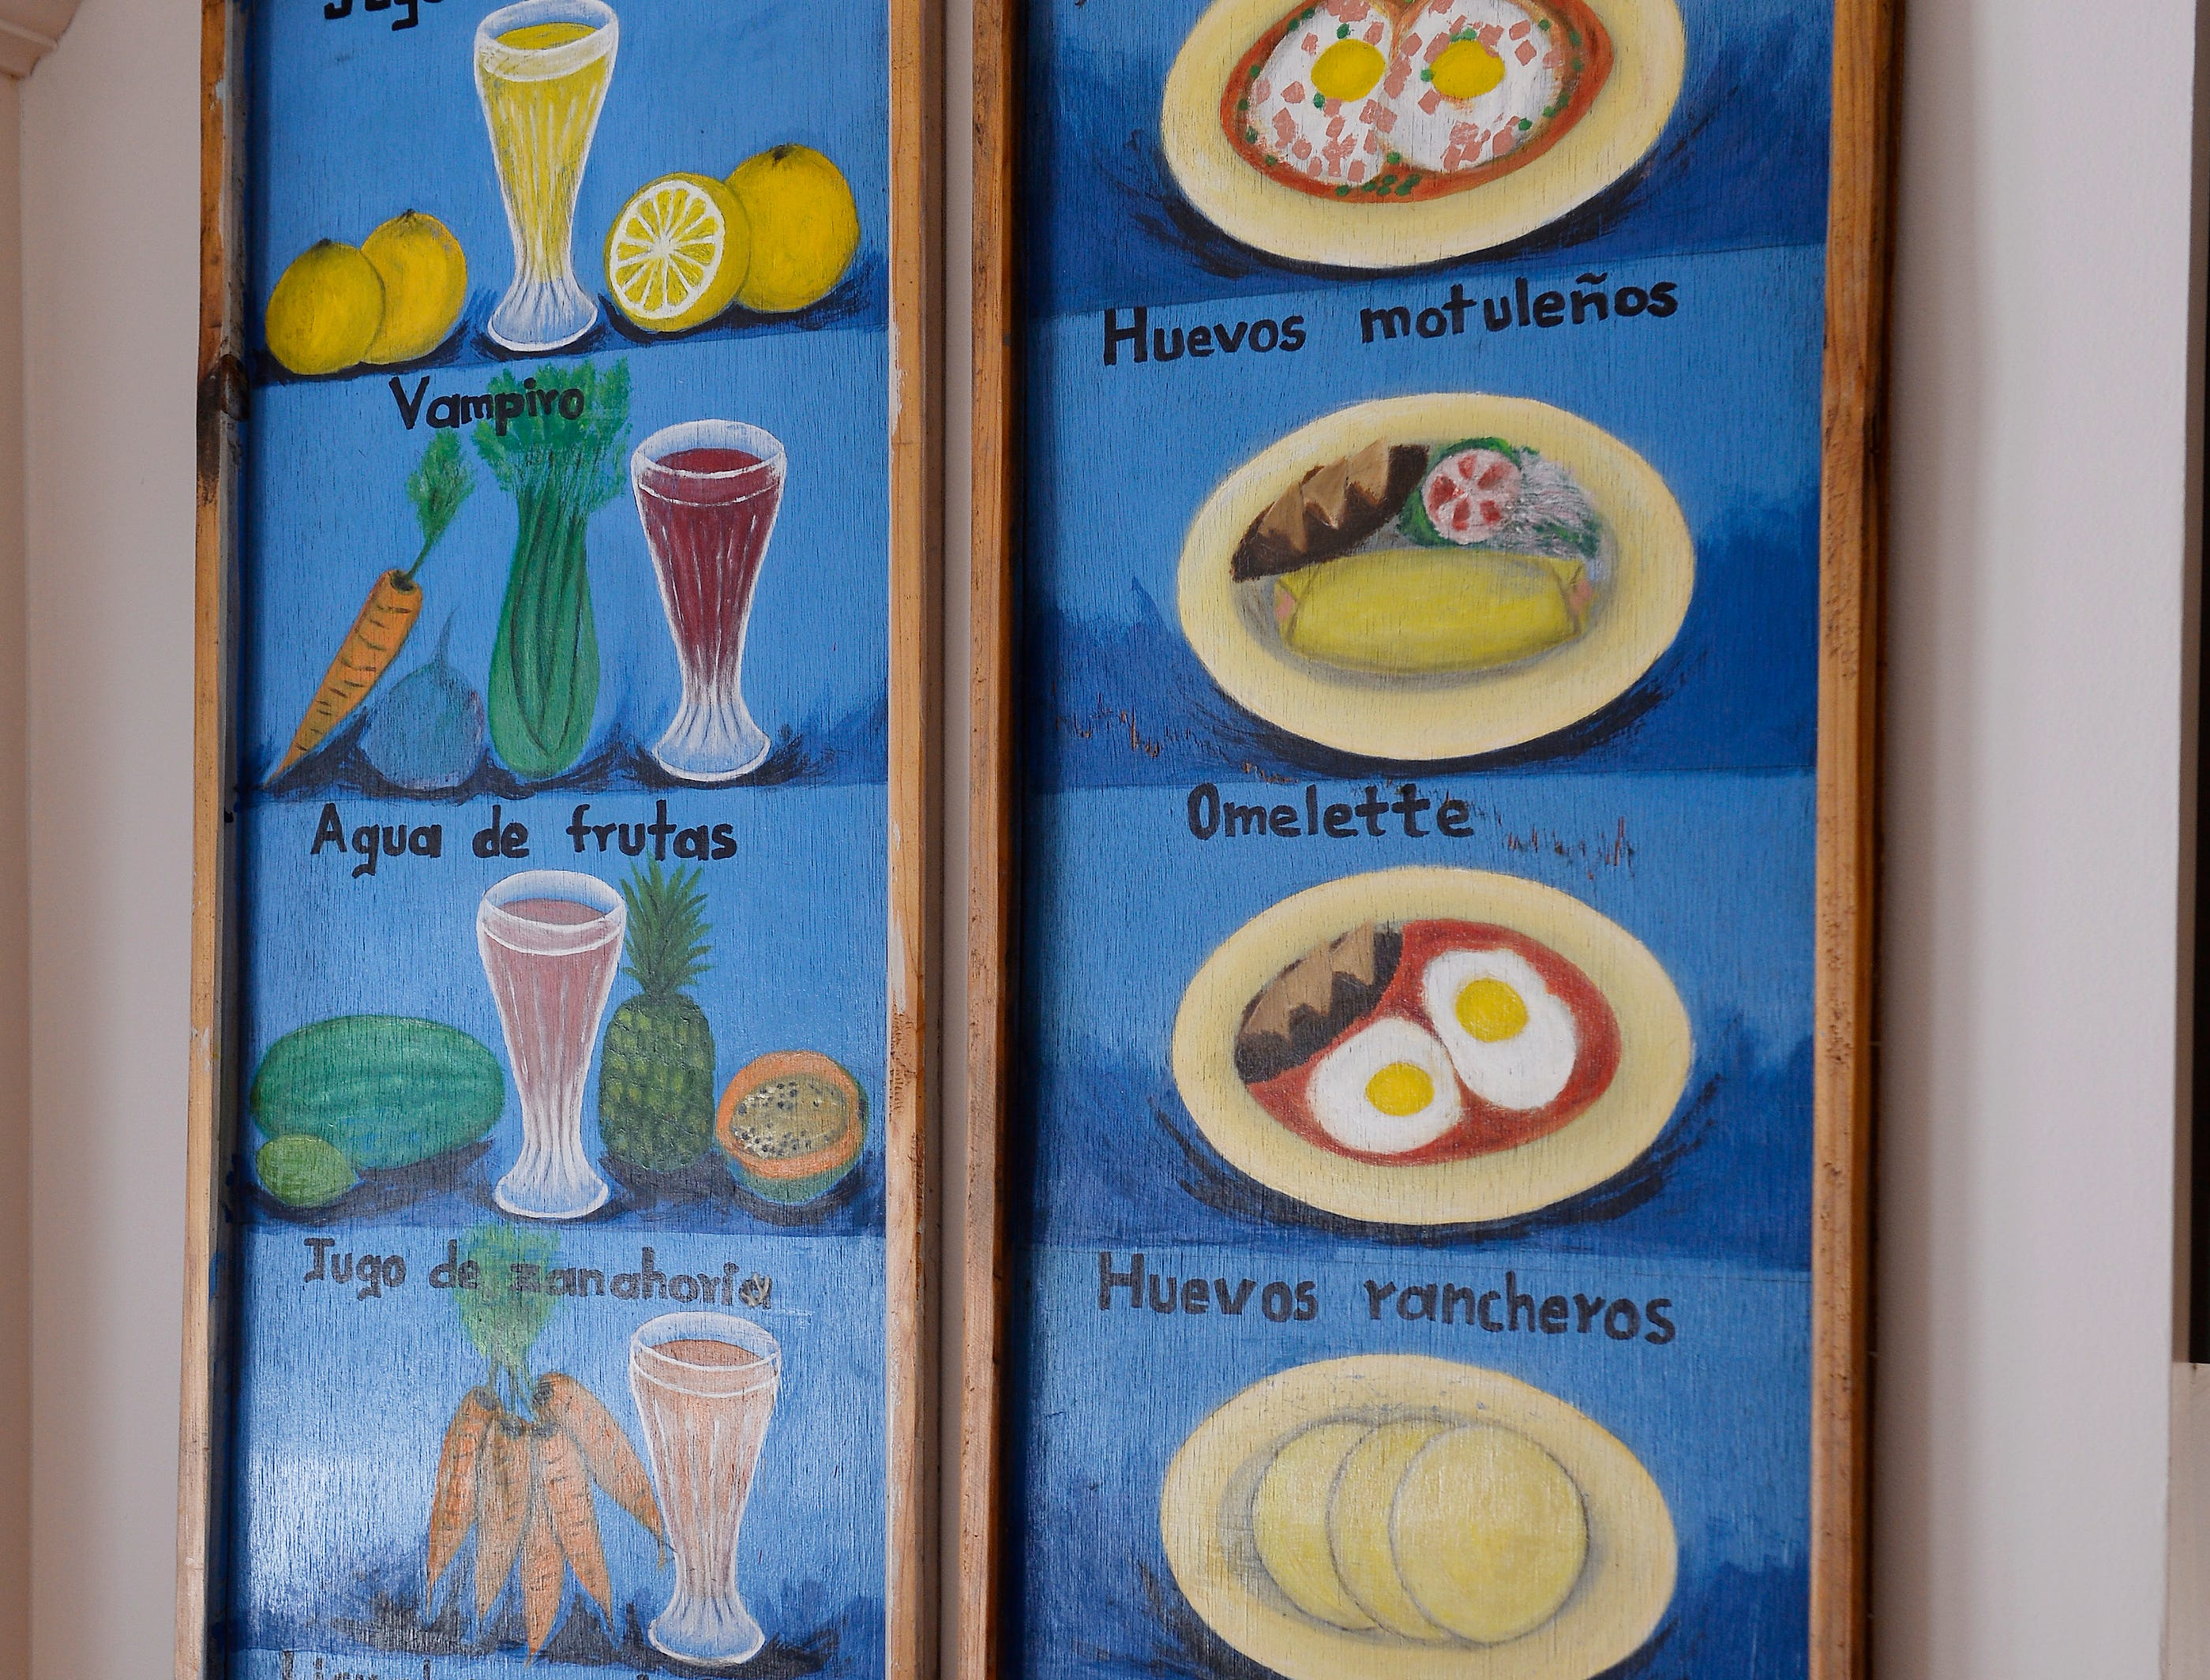 A  wood restaurant menu from Mexico is on display in the kitchen.